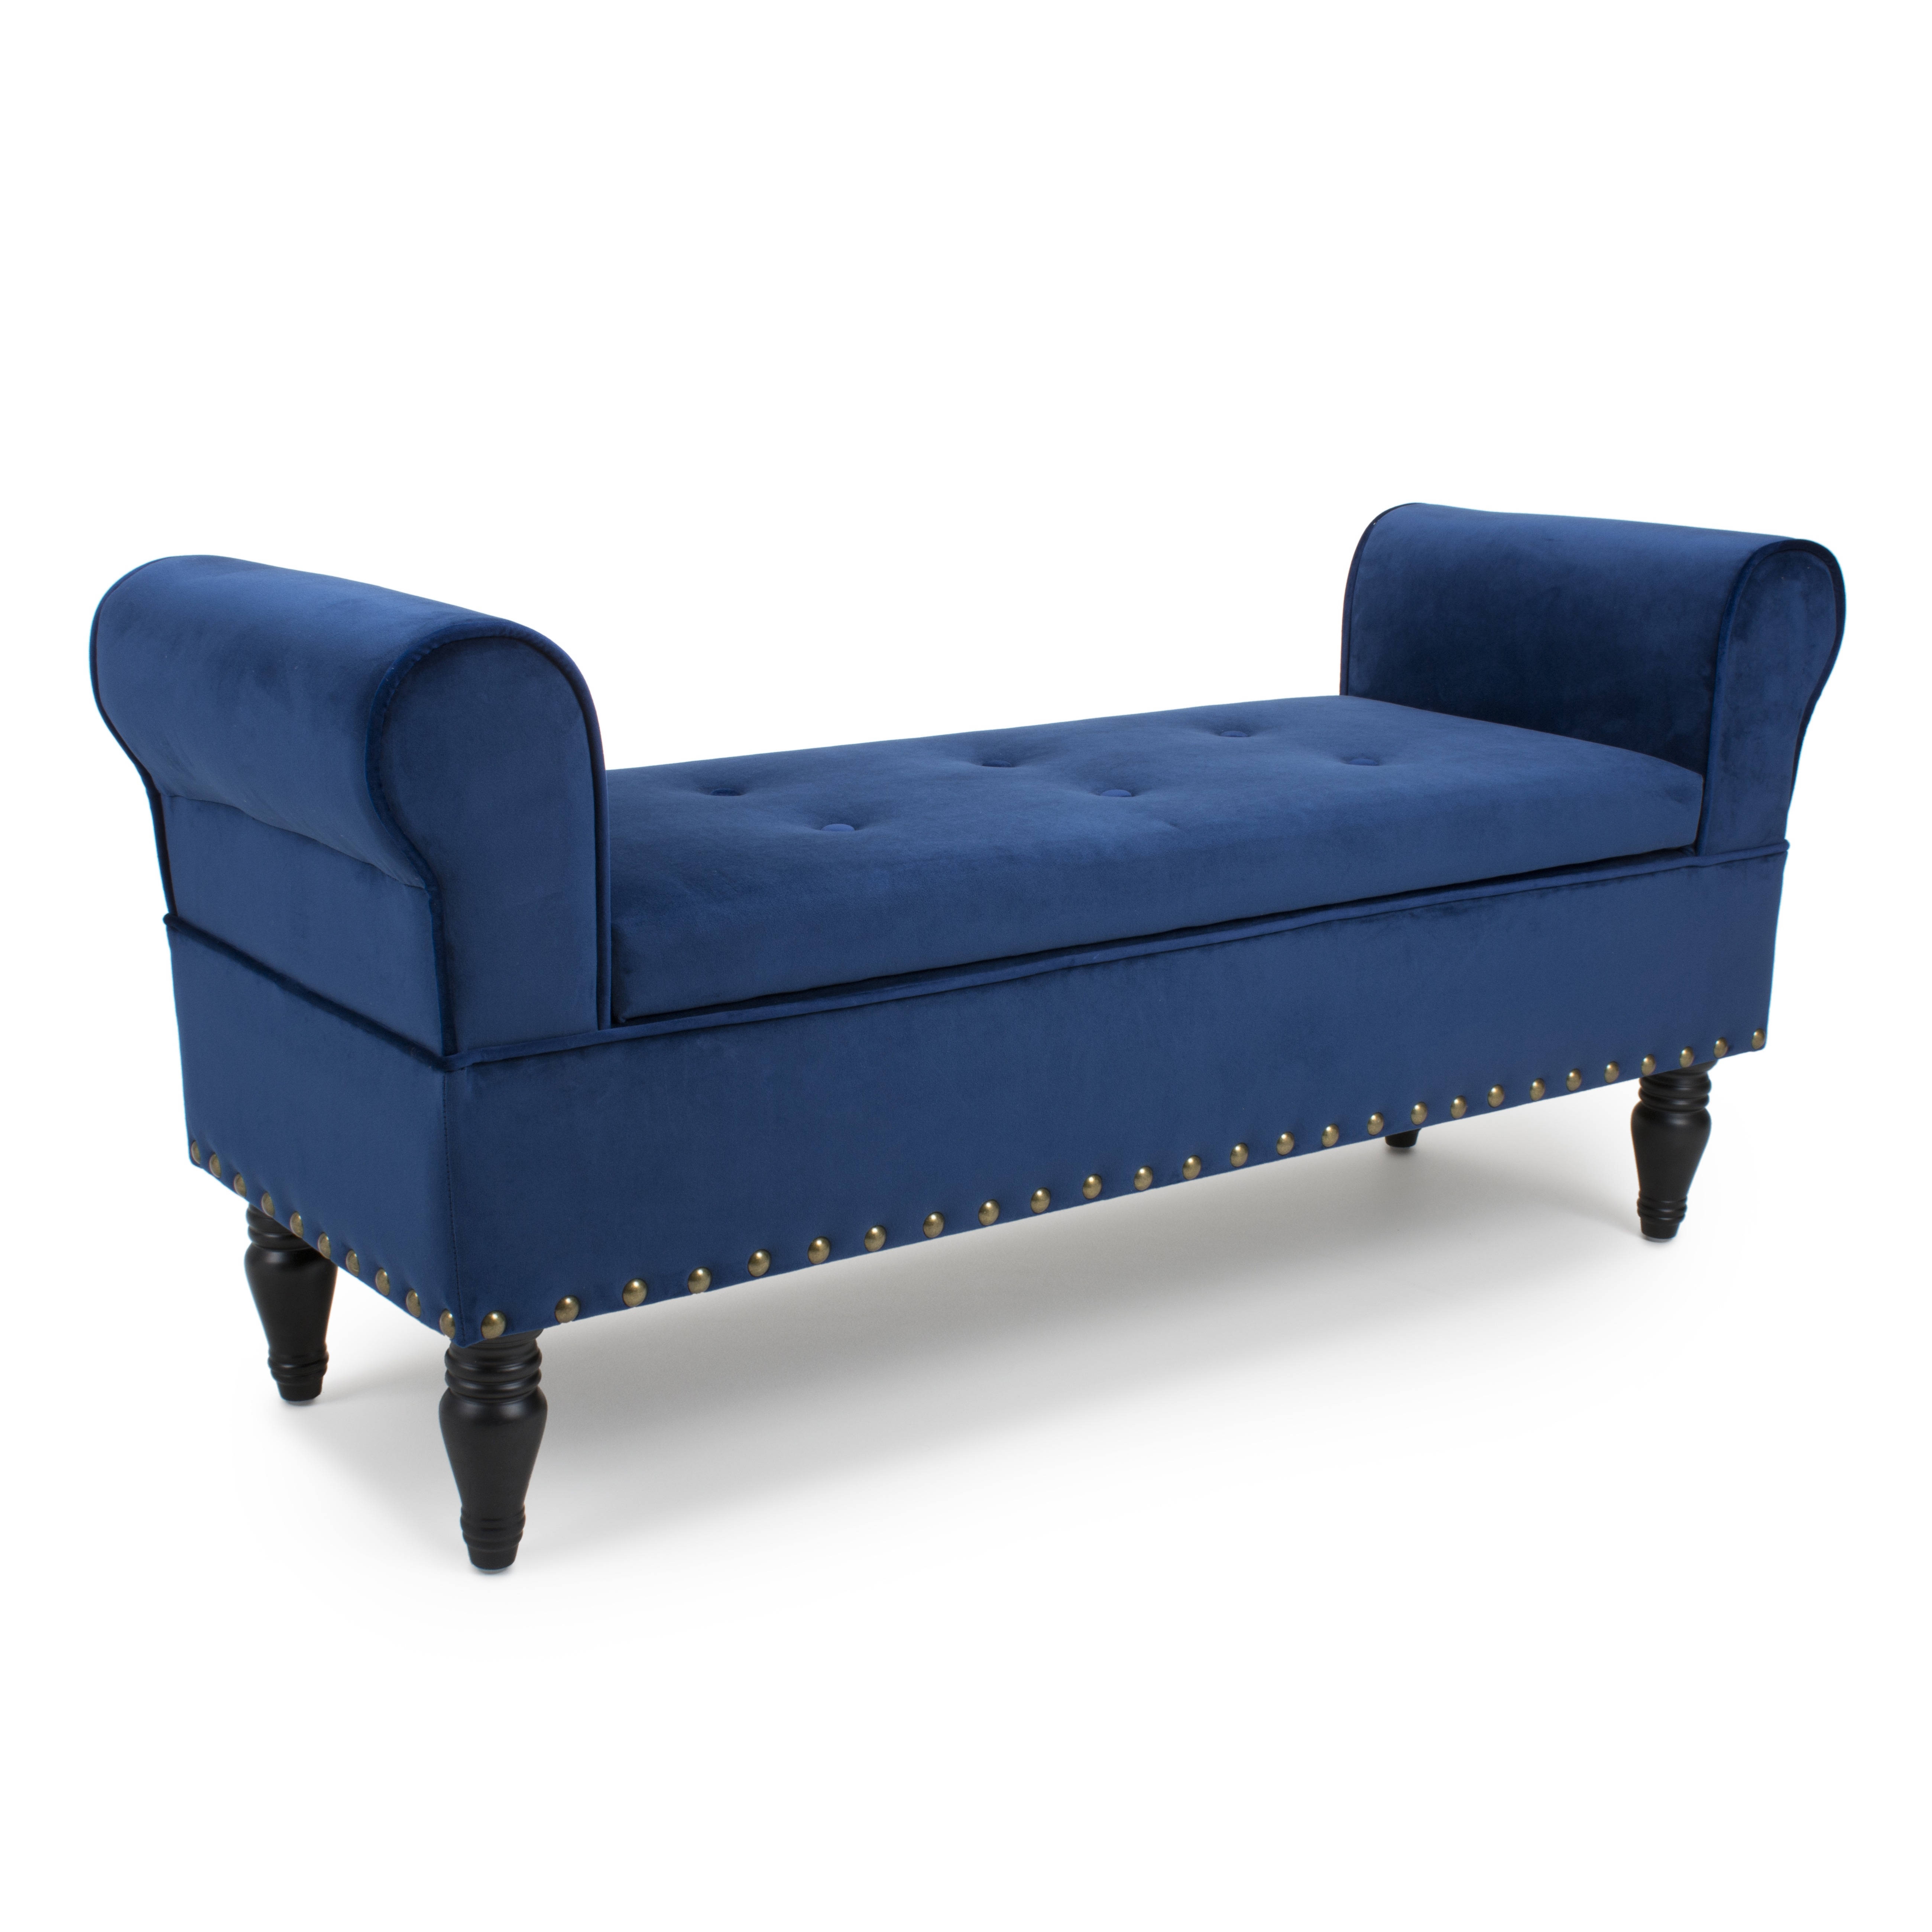 - Downtown Blue Ottoman Storage Window Seat Chaise Lounge Brushed